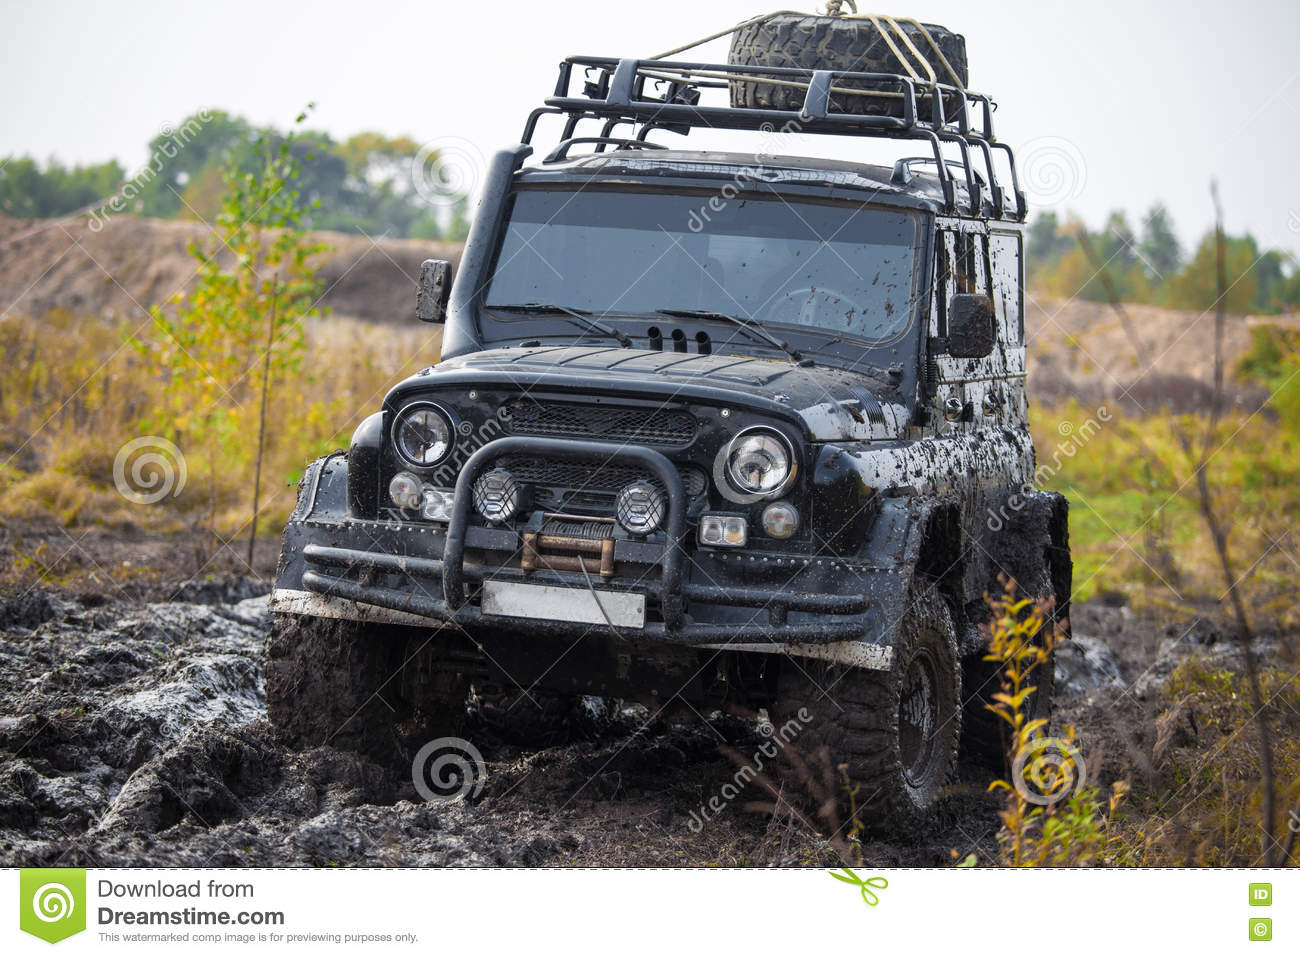 russian off road car uaz in mud stock photo image of dirt snorkel 78019130. Black Bedroom Furniture Sets. Home Design Ideas